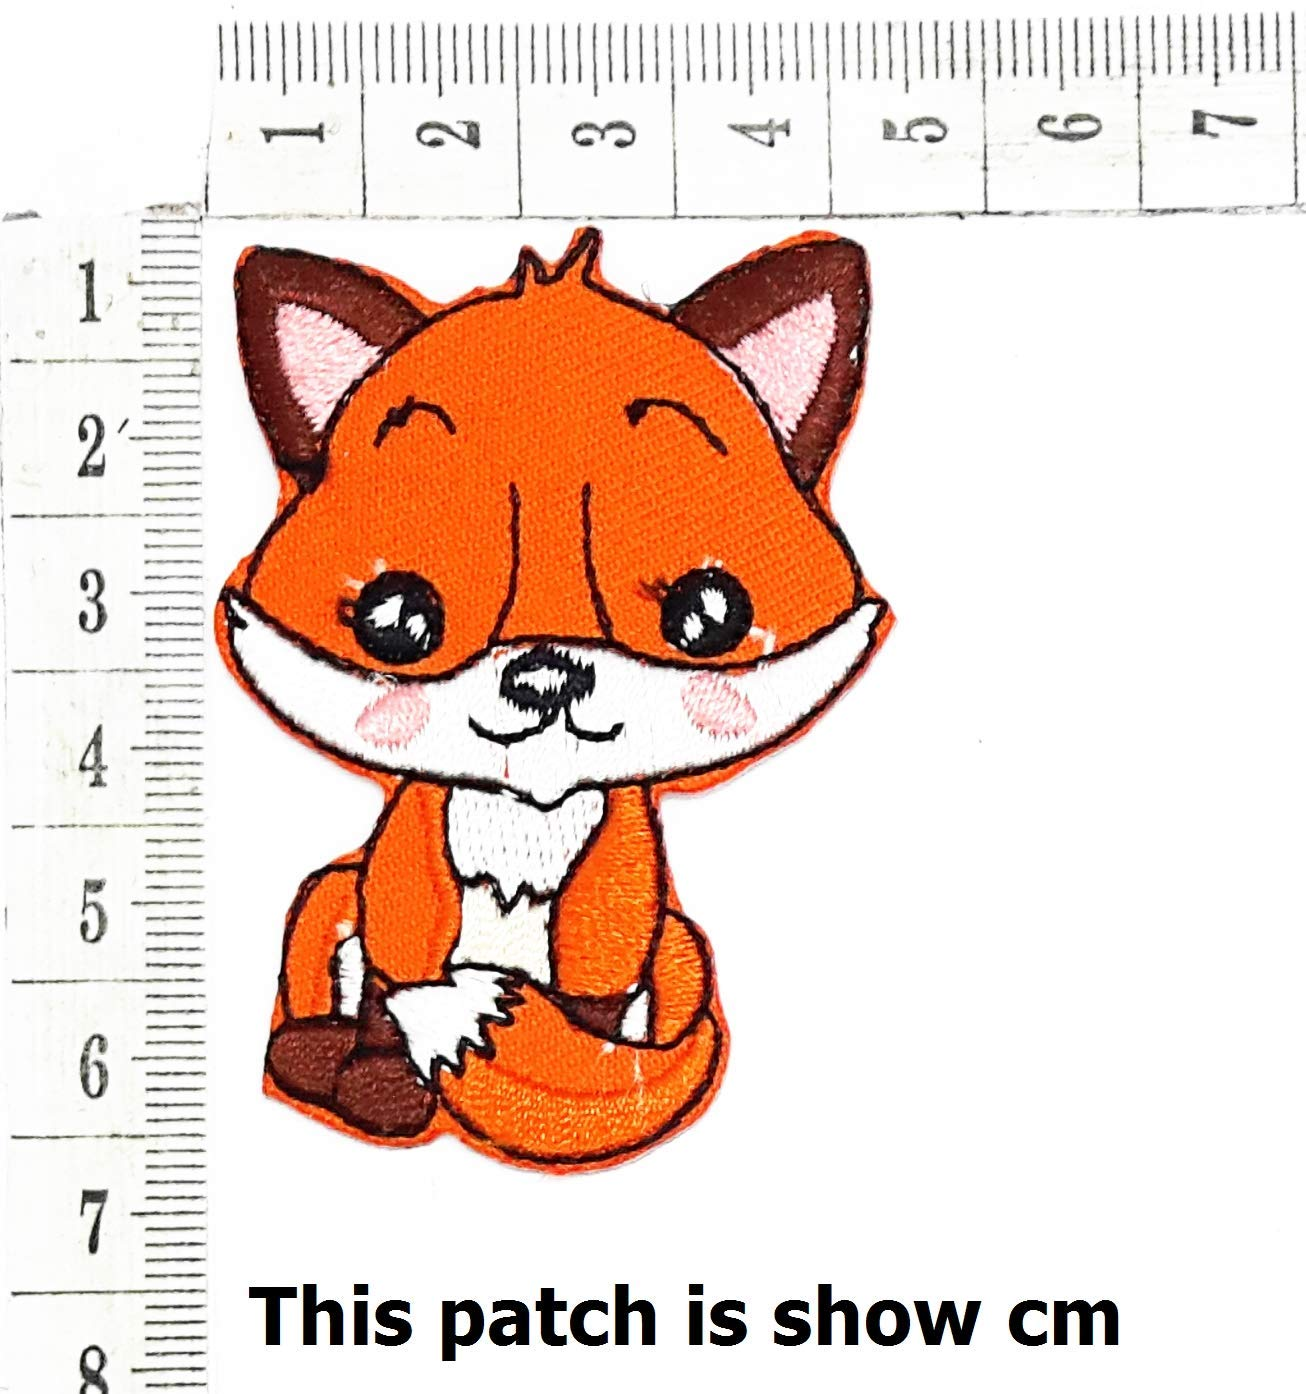 b1bdd36b2 Get Quotations · Cute Wonderful Fox Arctic Fox Dog Animals Cartoon Chidren  Kids Embroidren Iron Patch/Logo Sew